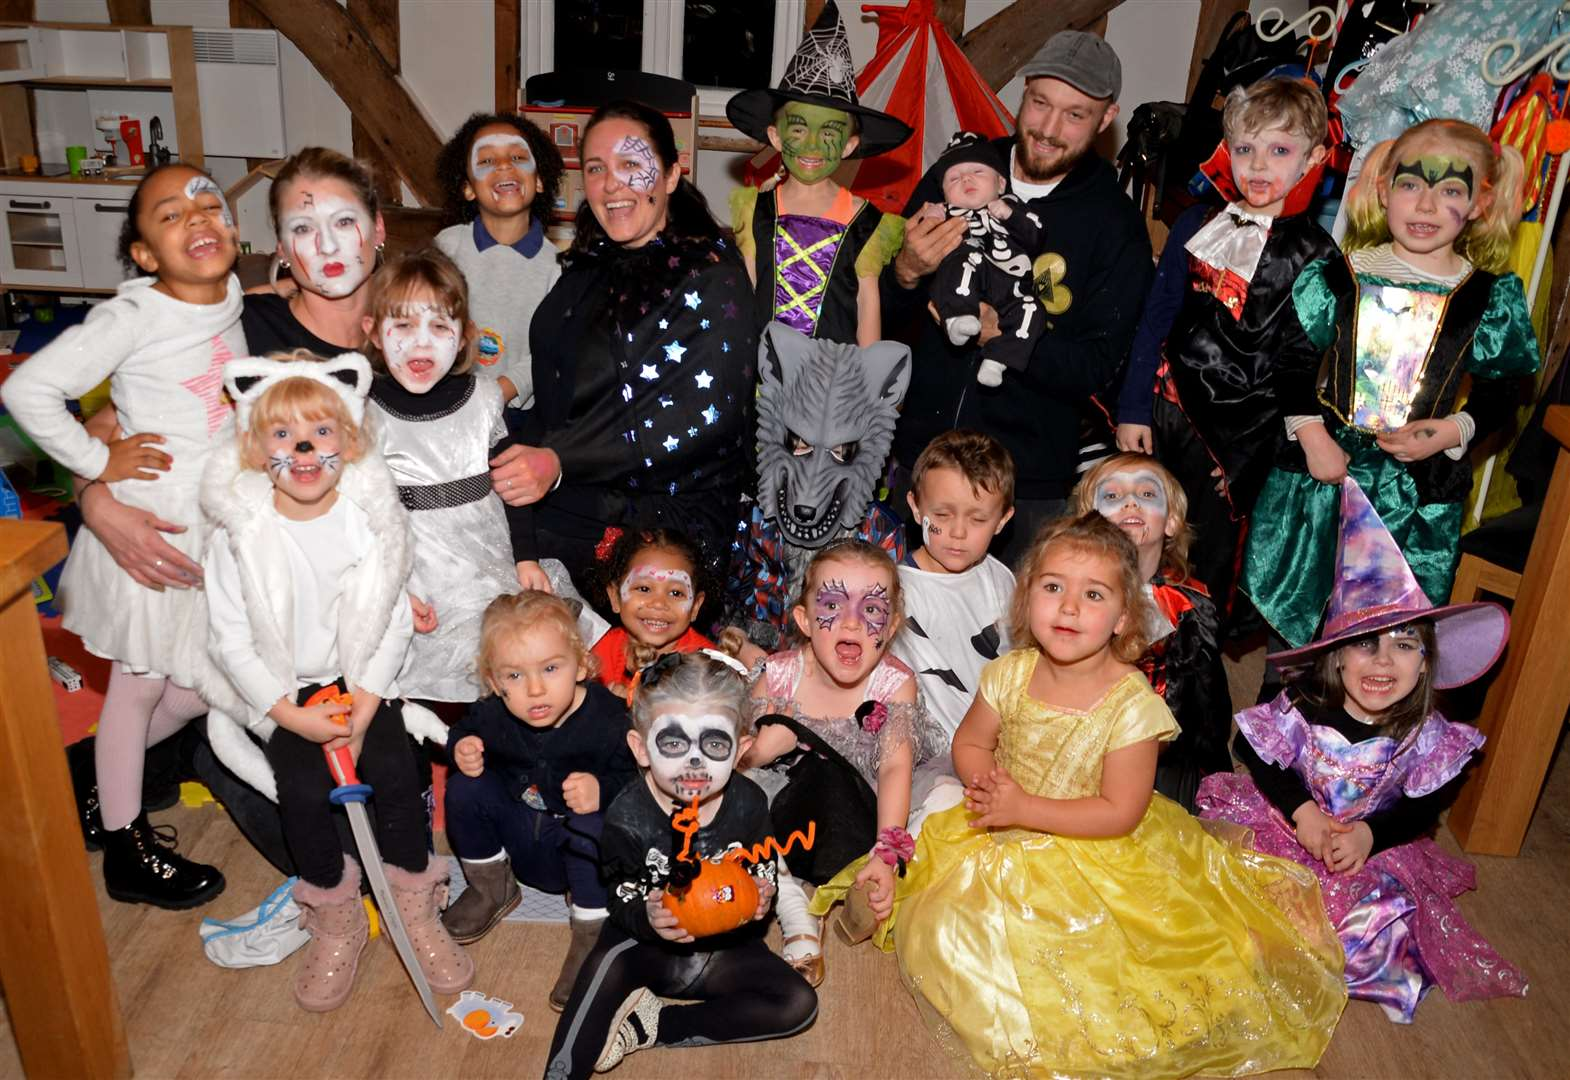 Spectacular spooky party is ghoulish fun for youngsters